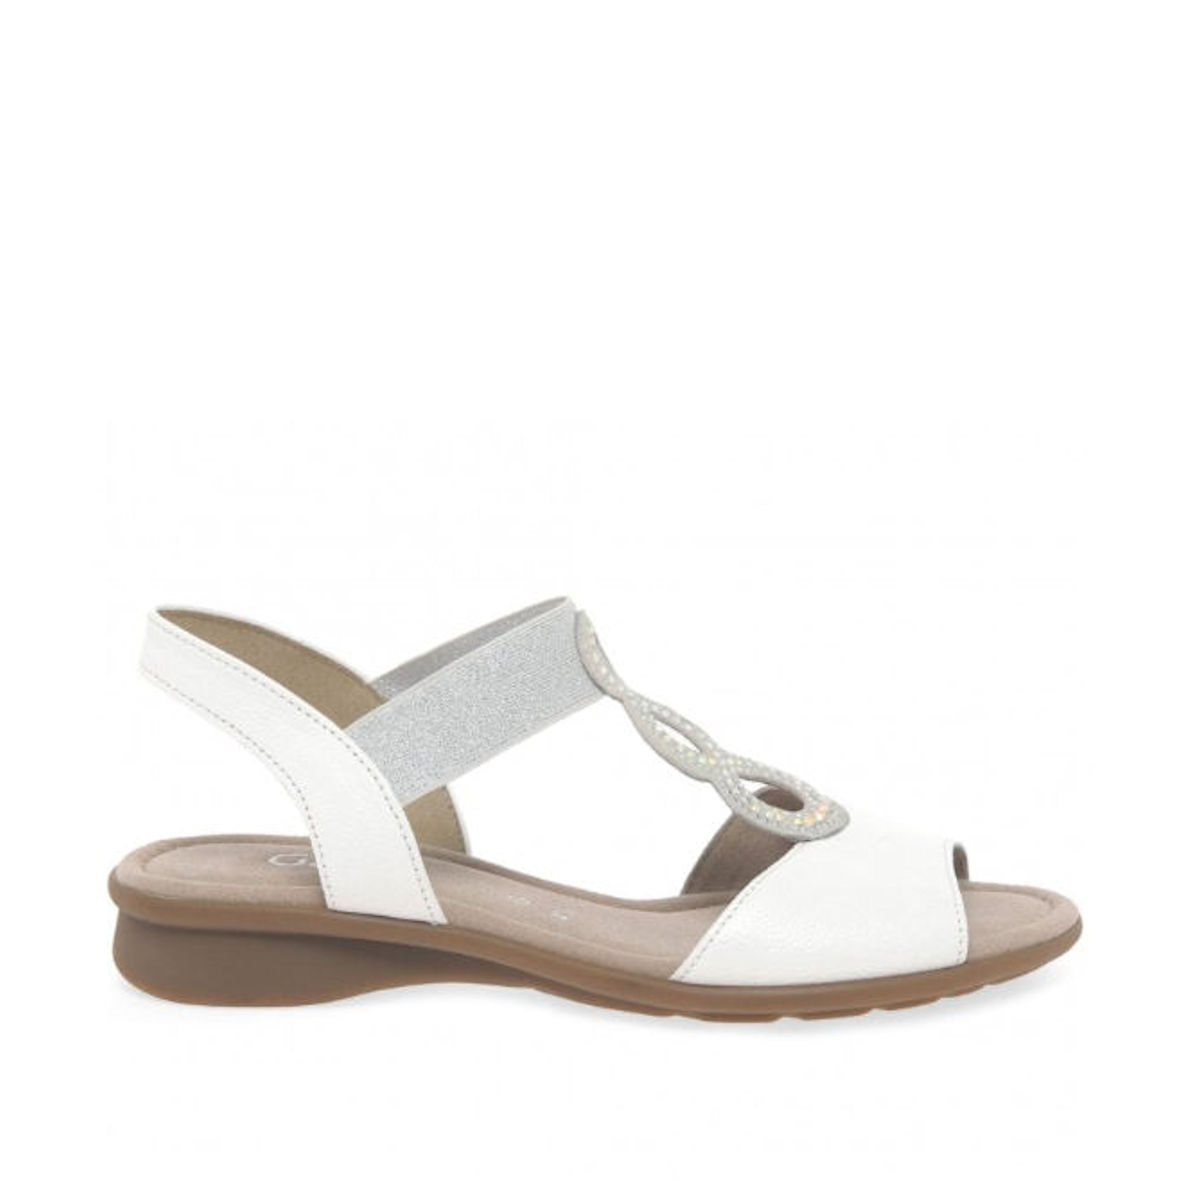 Gabor Merlin - Womens Embellished Open Toe White Flat Sandals